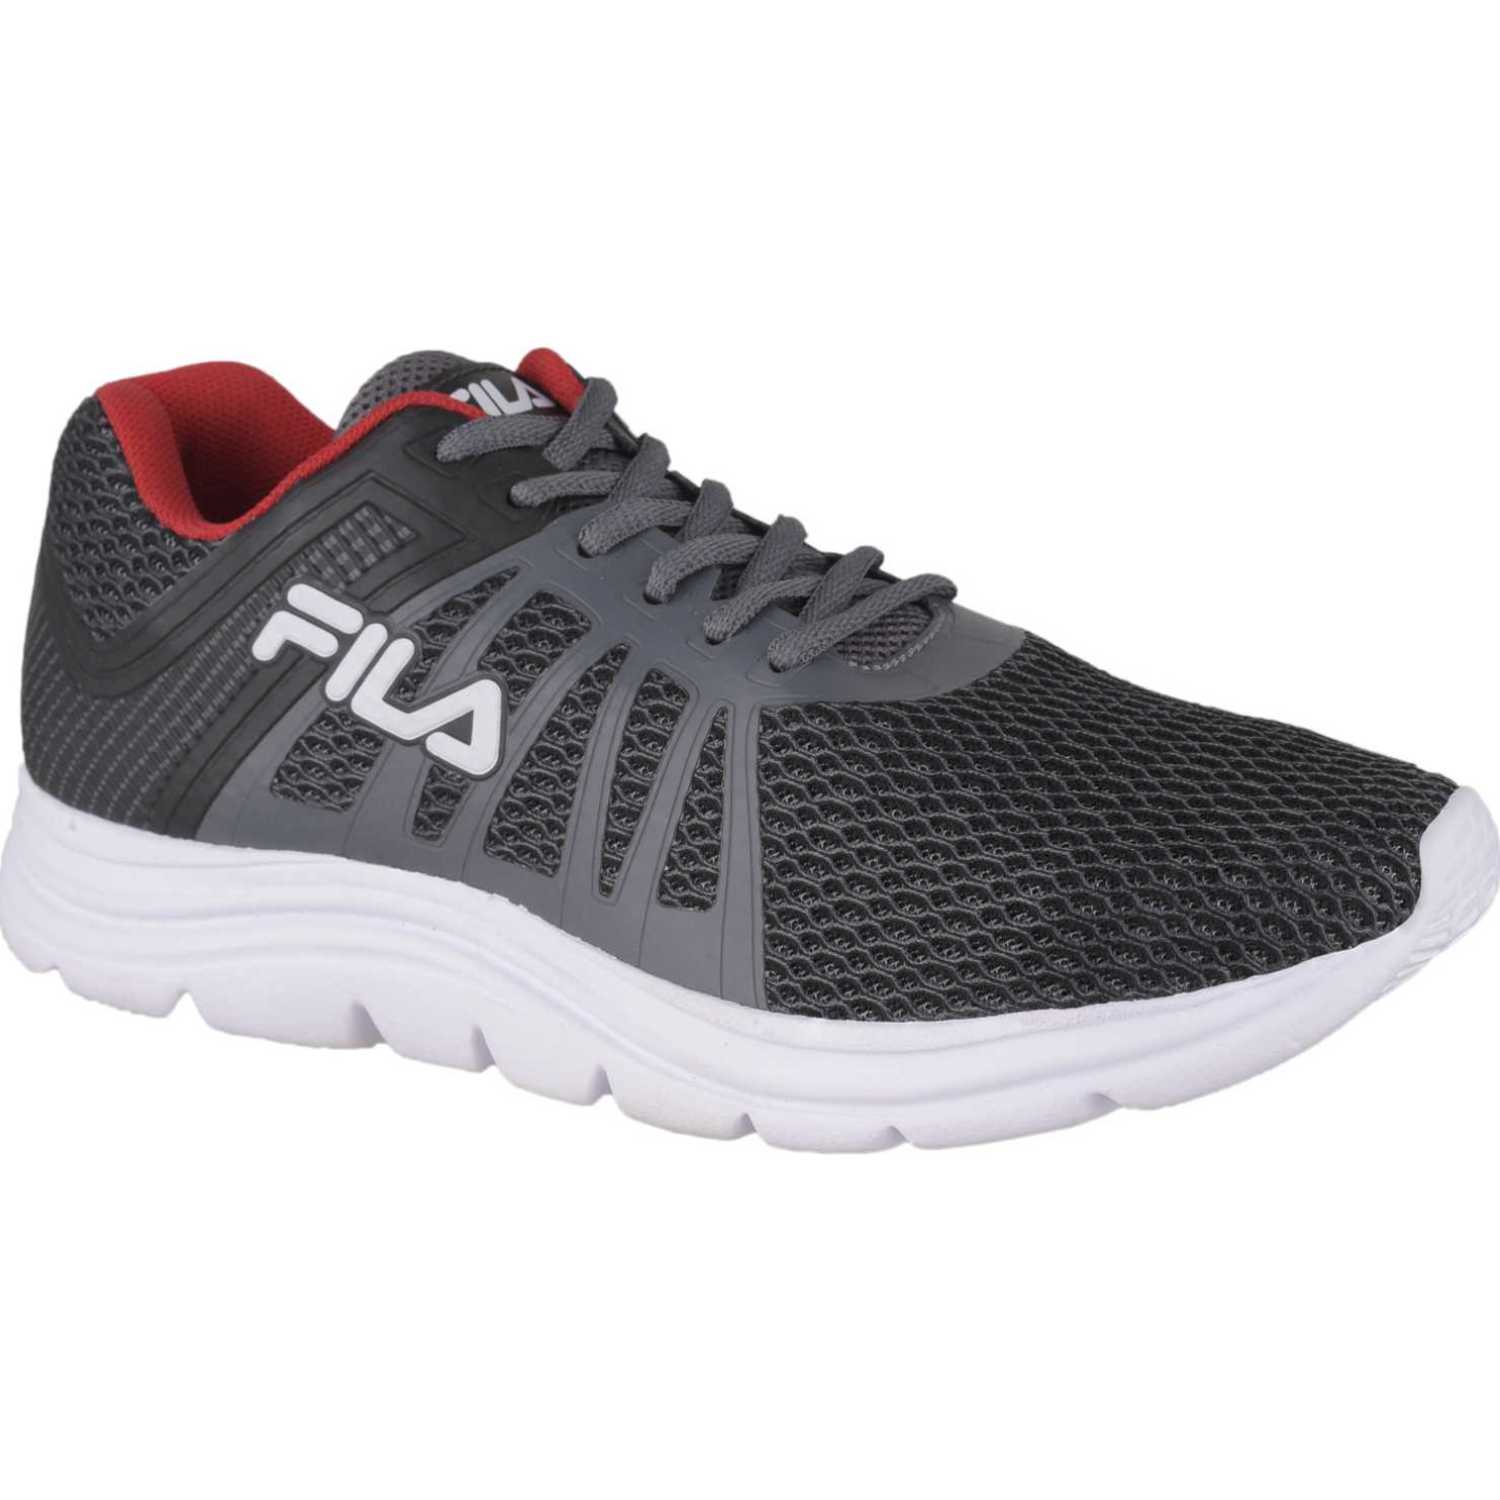 Fila tenis fila finder masculino Negro /gris Walking